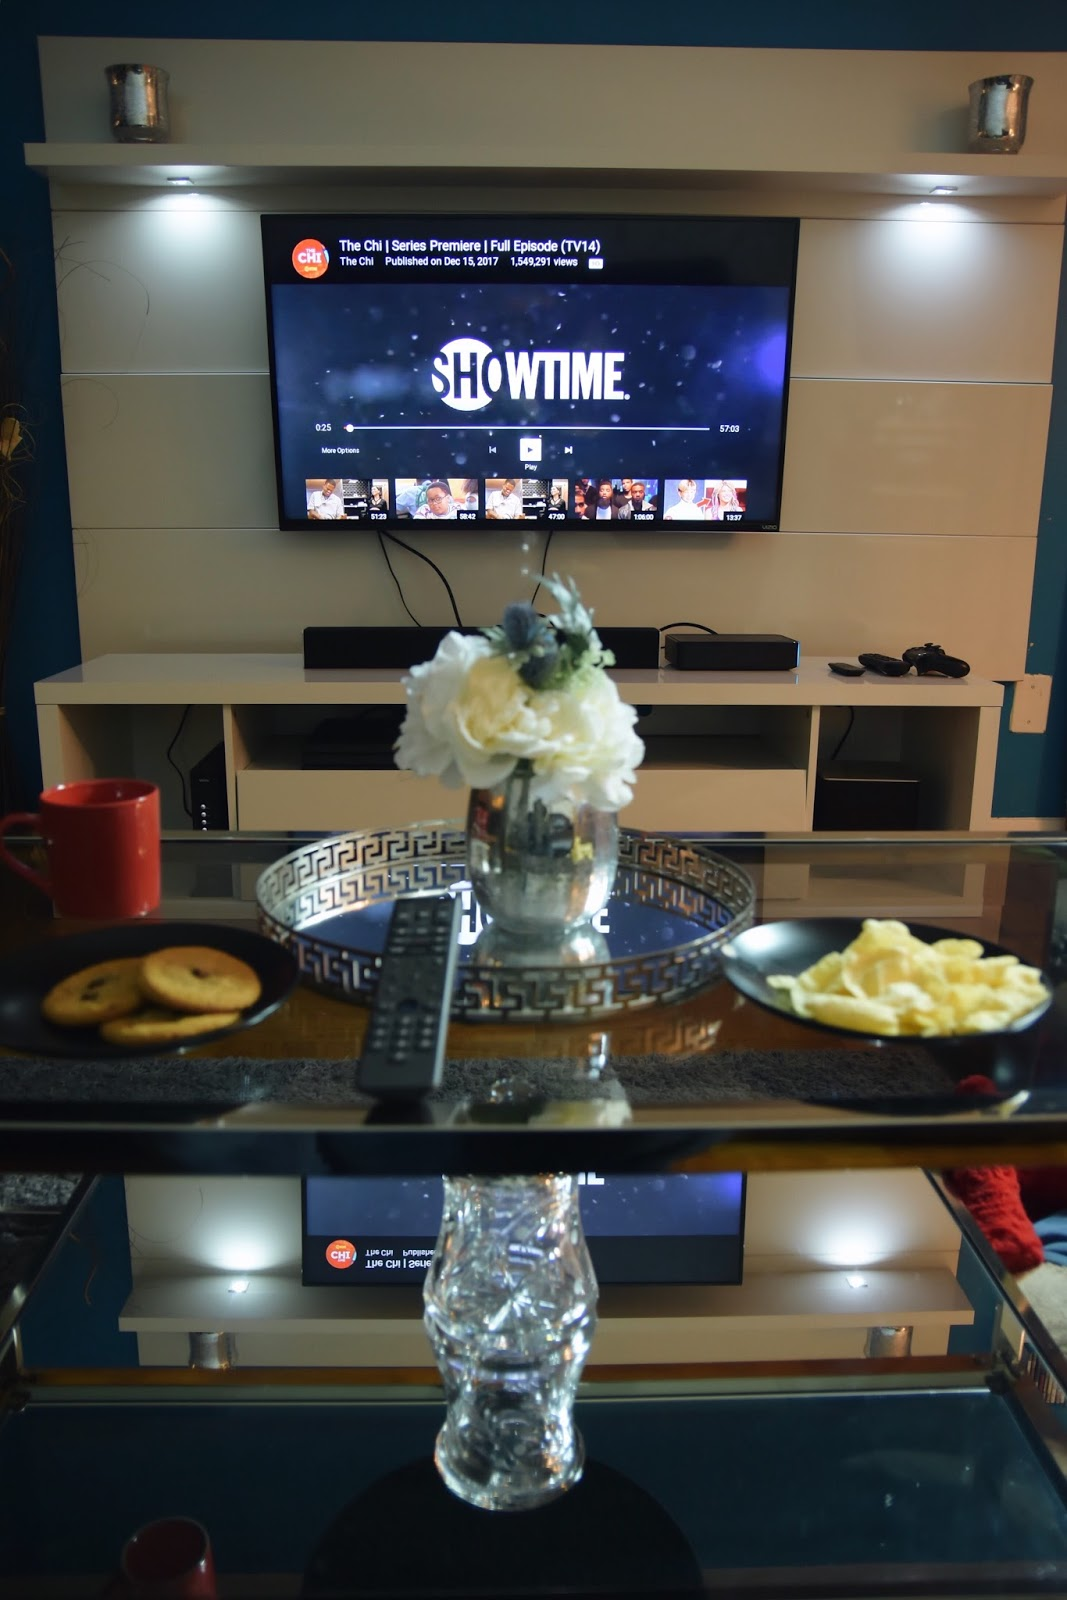 The Chi, Showtime, Showtime streaming, tv shows, relaxing at home, lifestyle bloggers